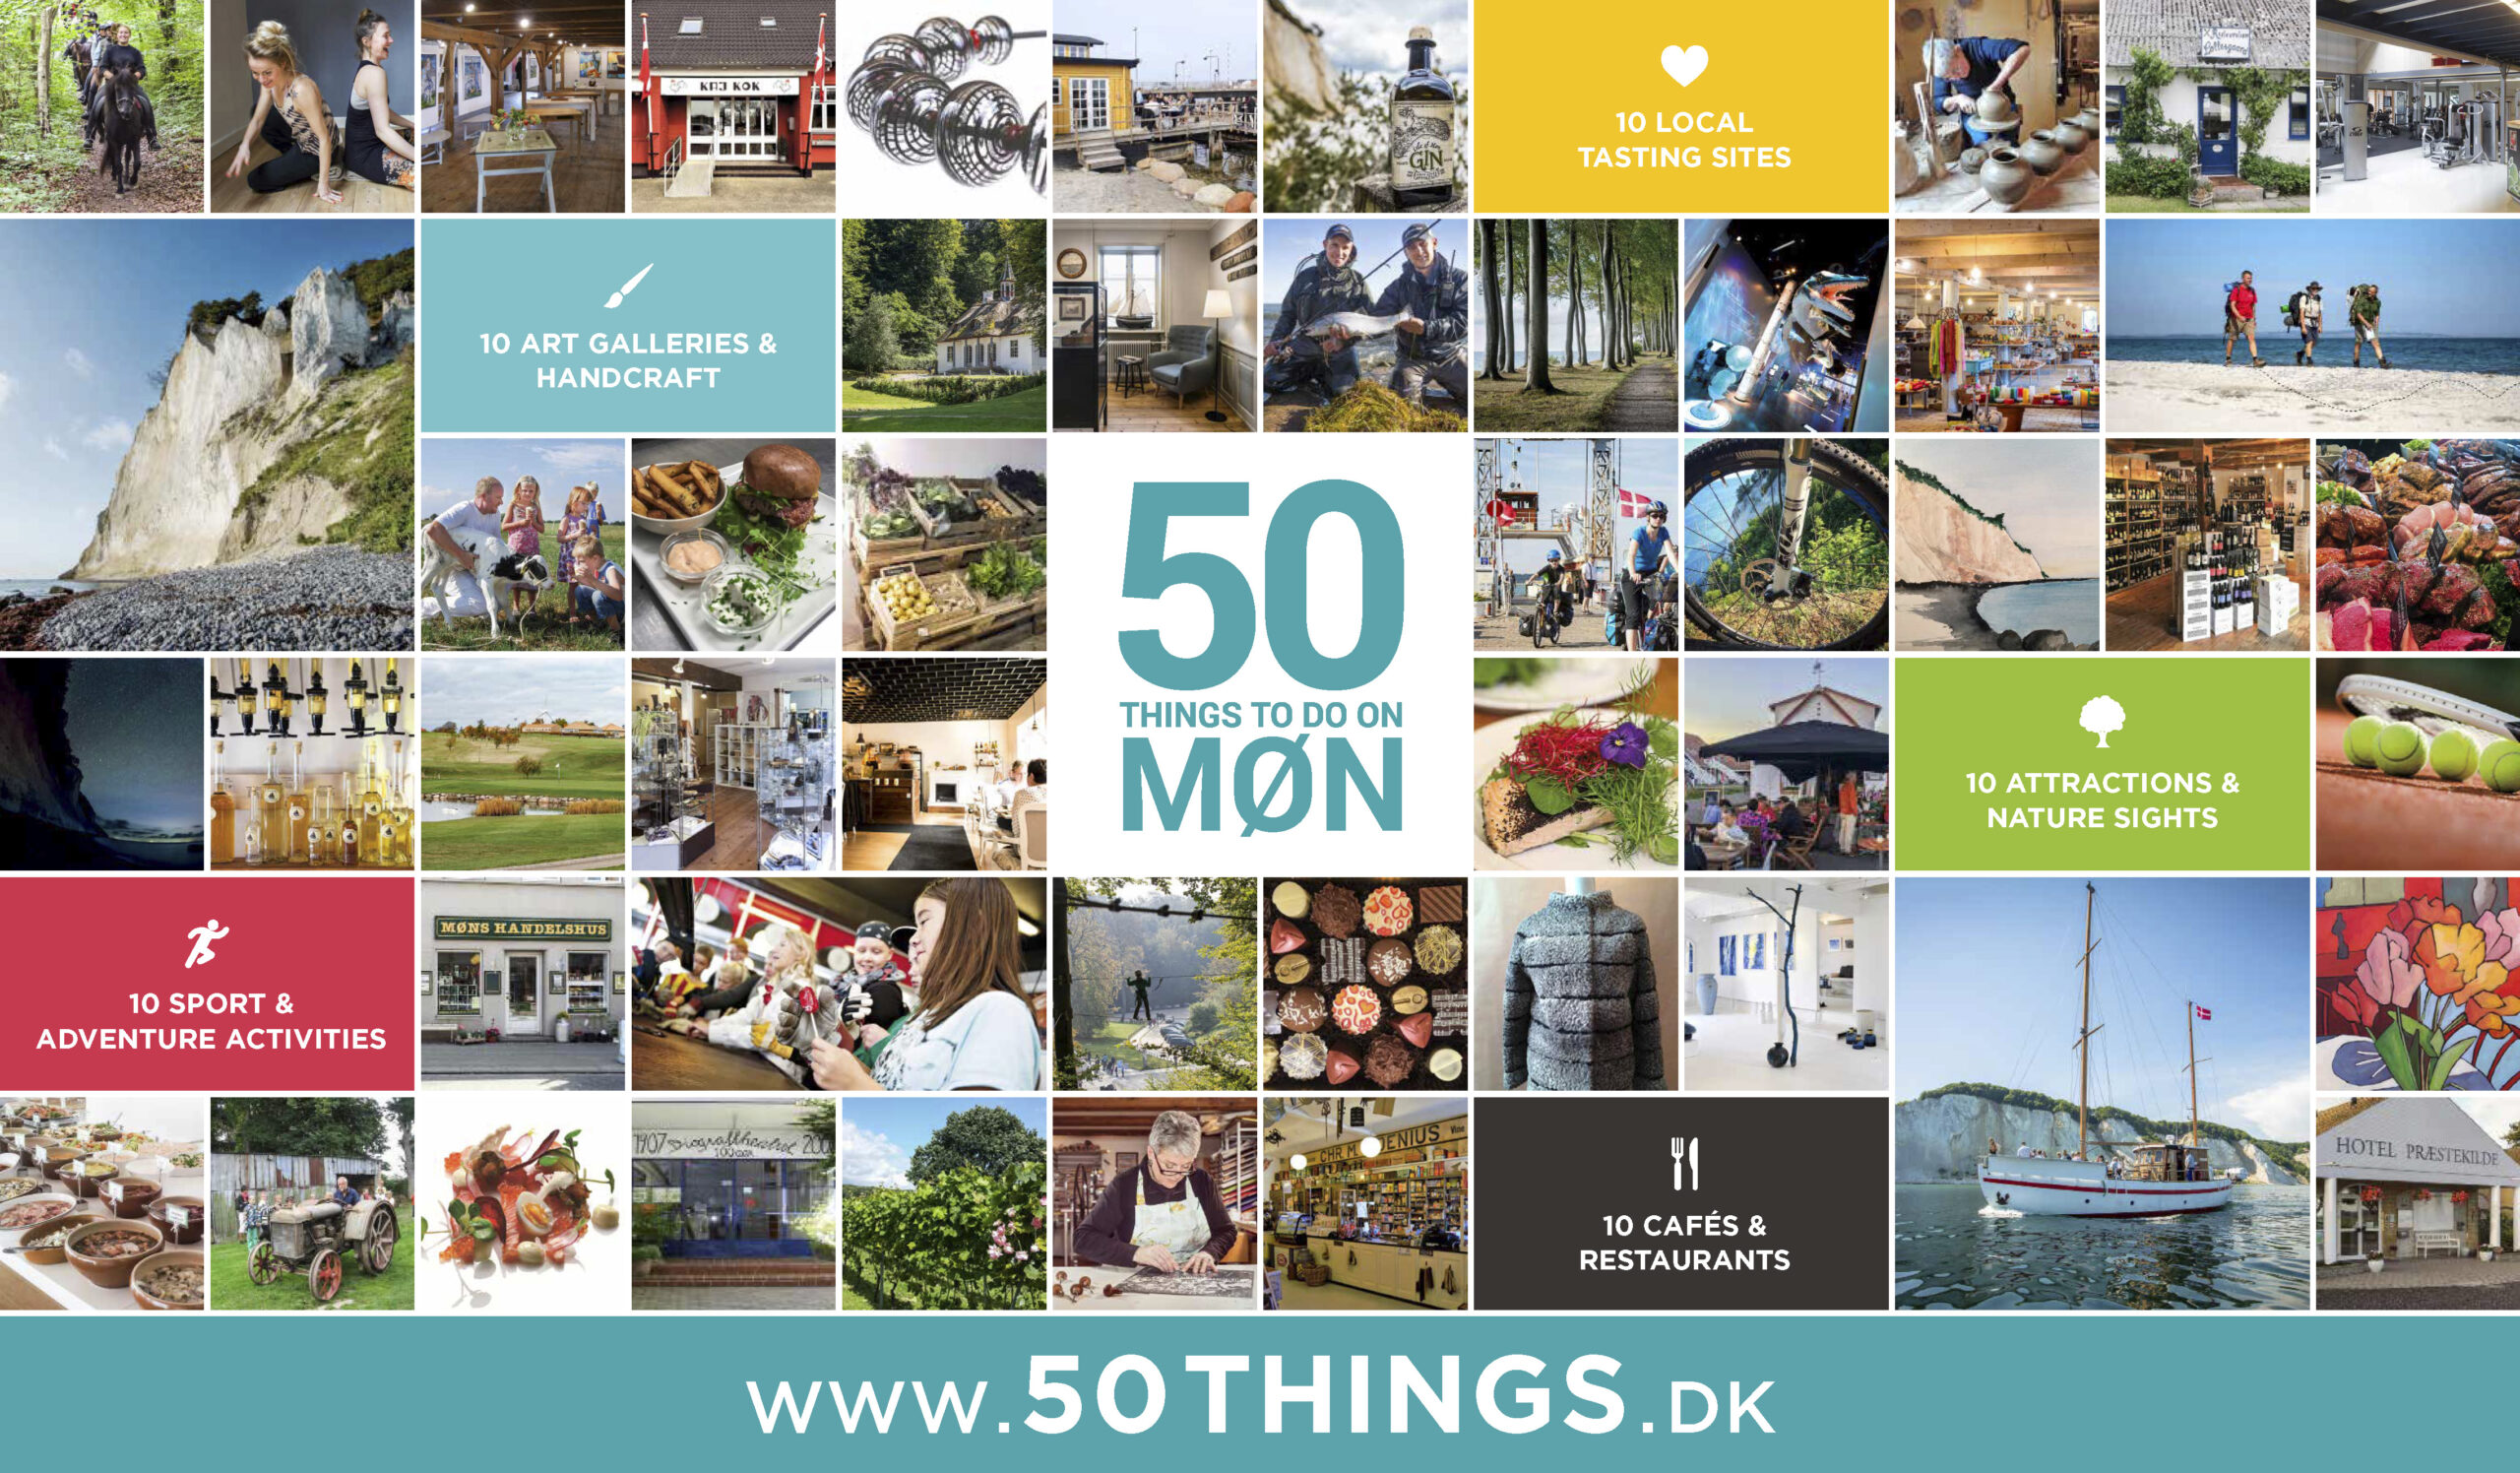 Aktiviteter ved Møn Strandcamping - 50 THINGS TO DO ON MØN